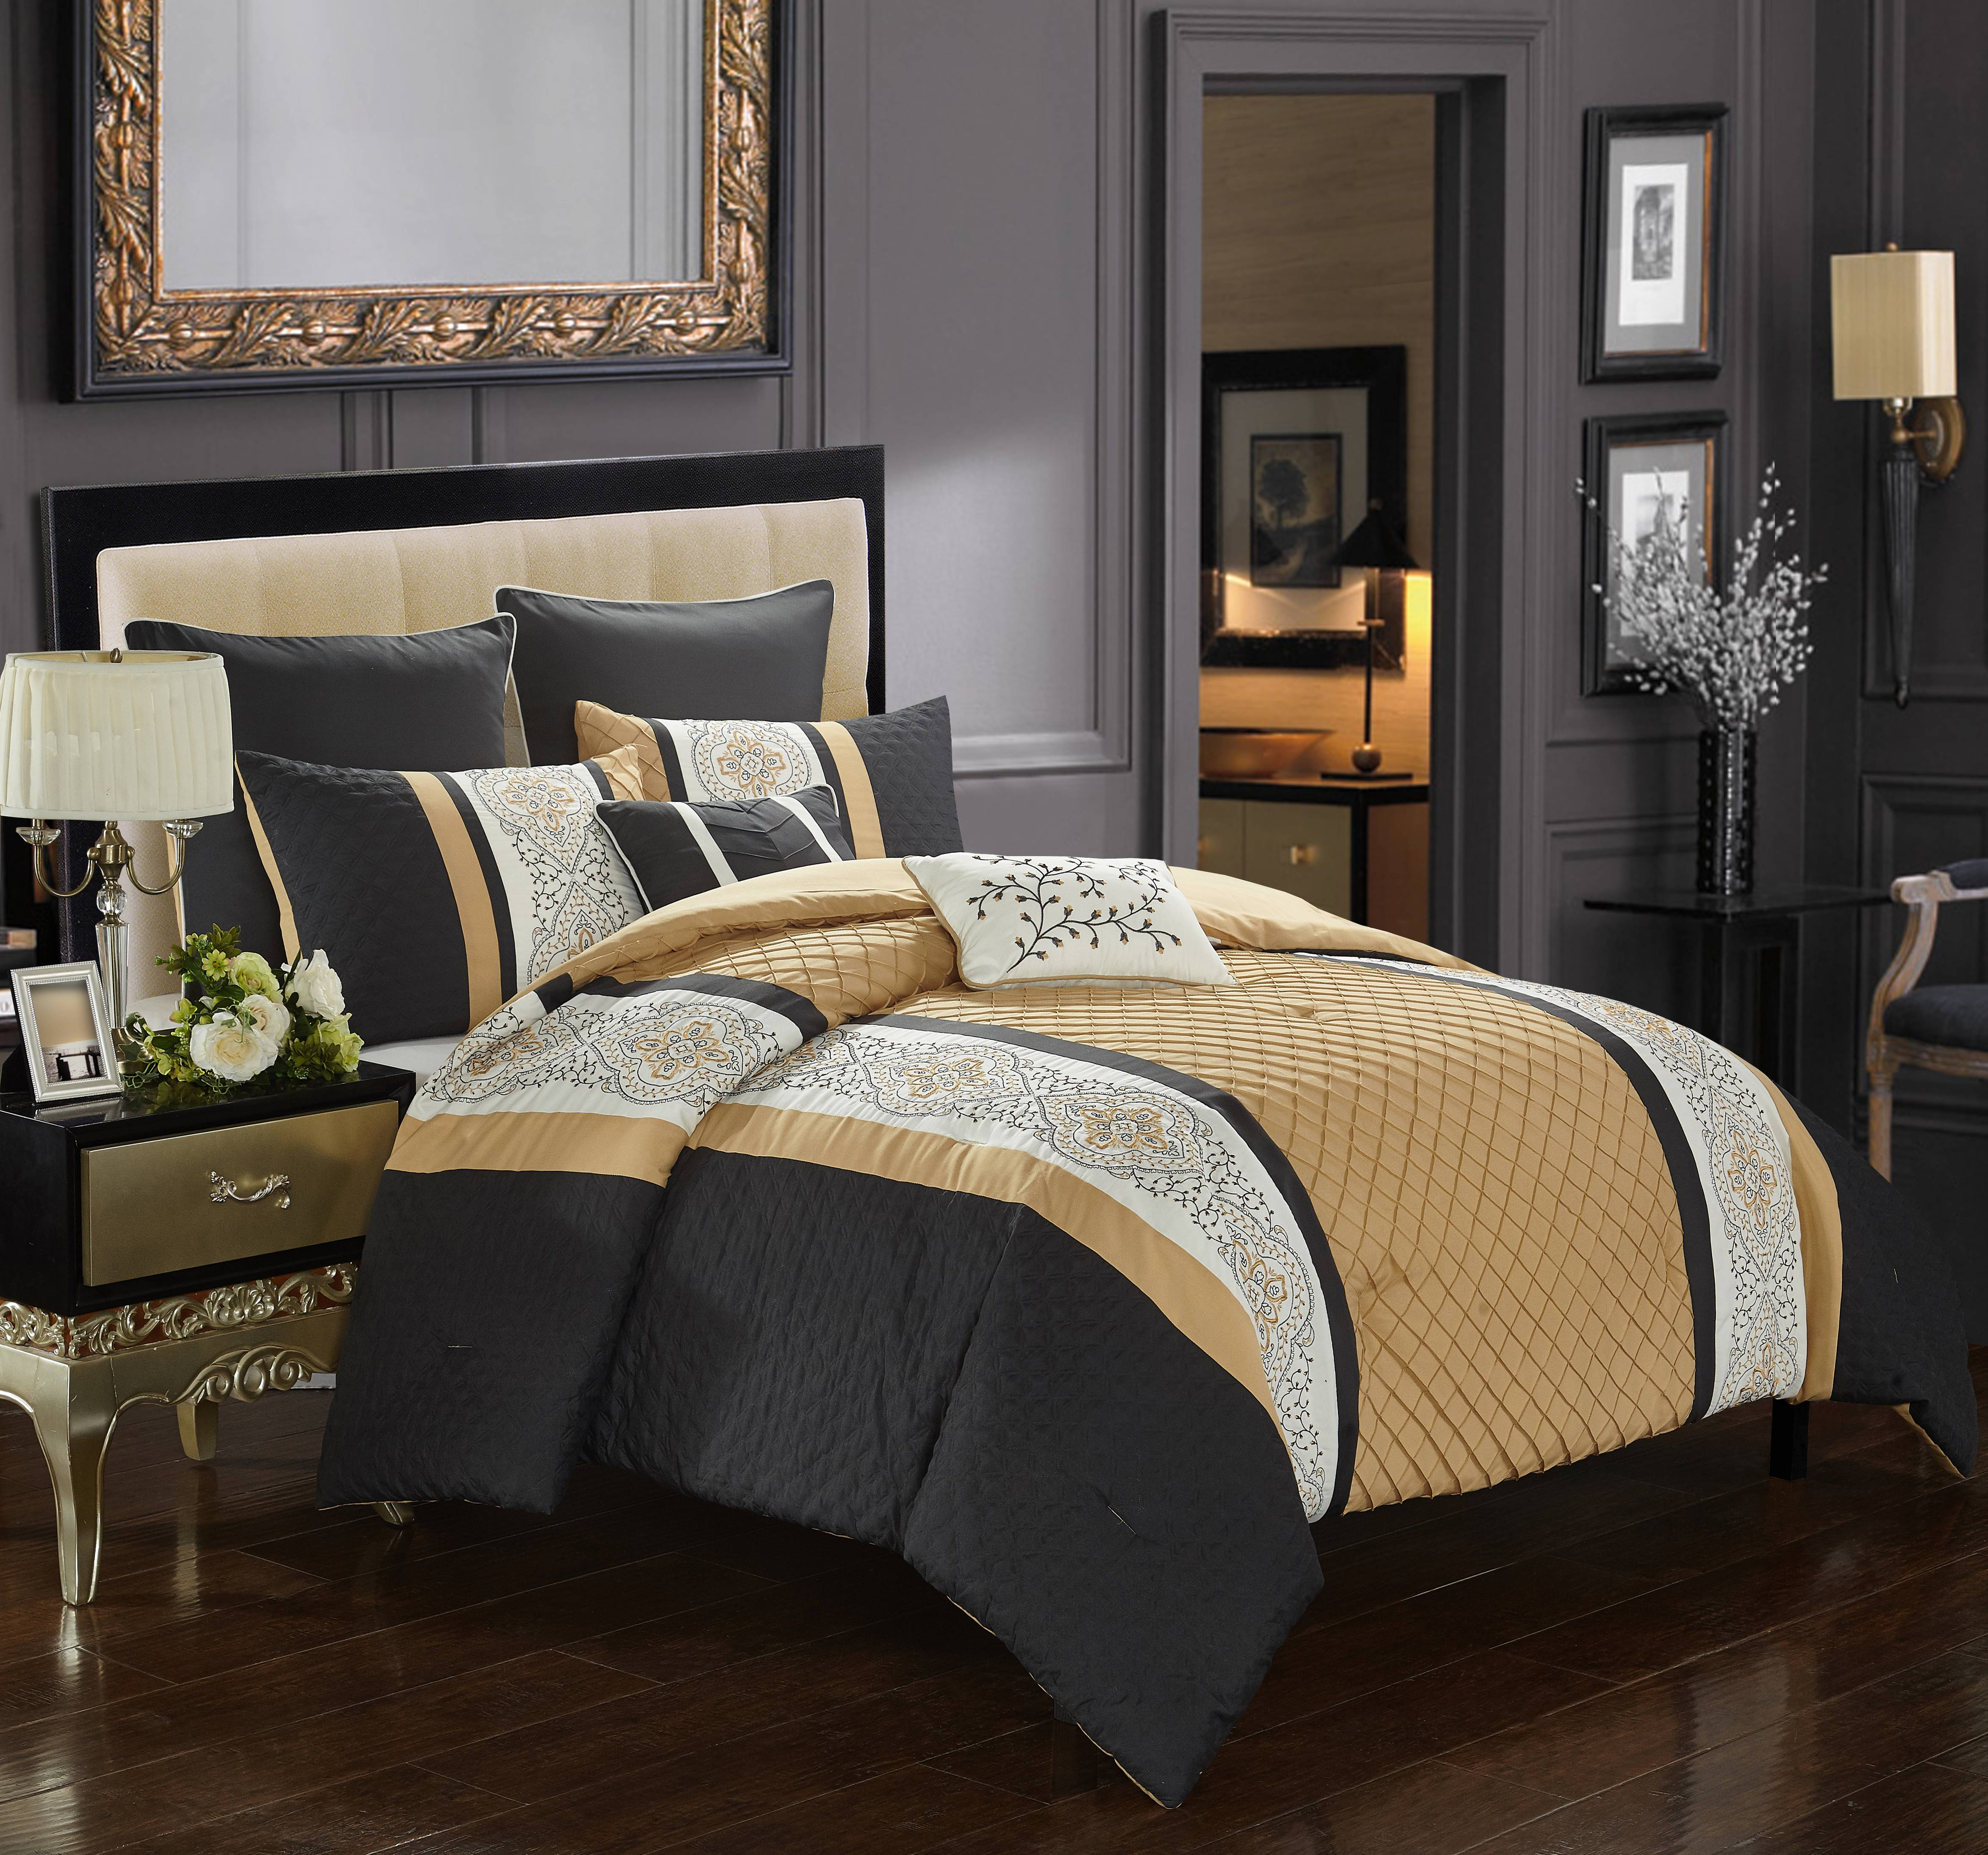 Better Homes & Gardens Quilted Embroidered Stripe 7 Piece Comforter Set